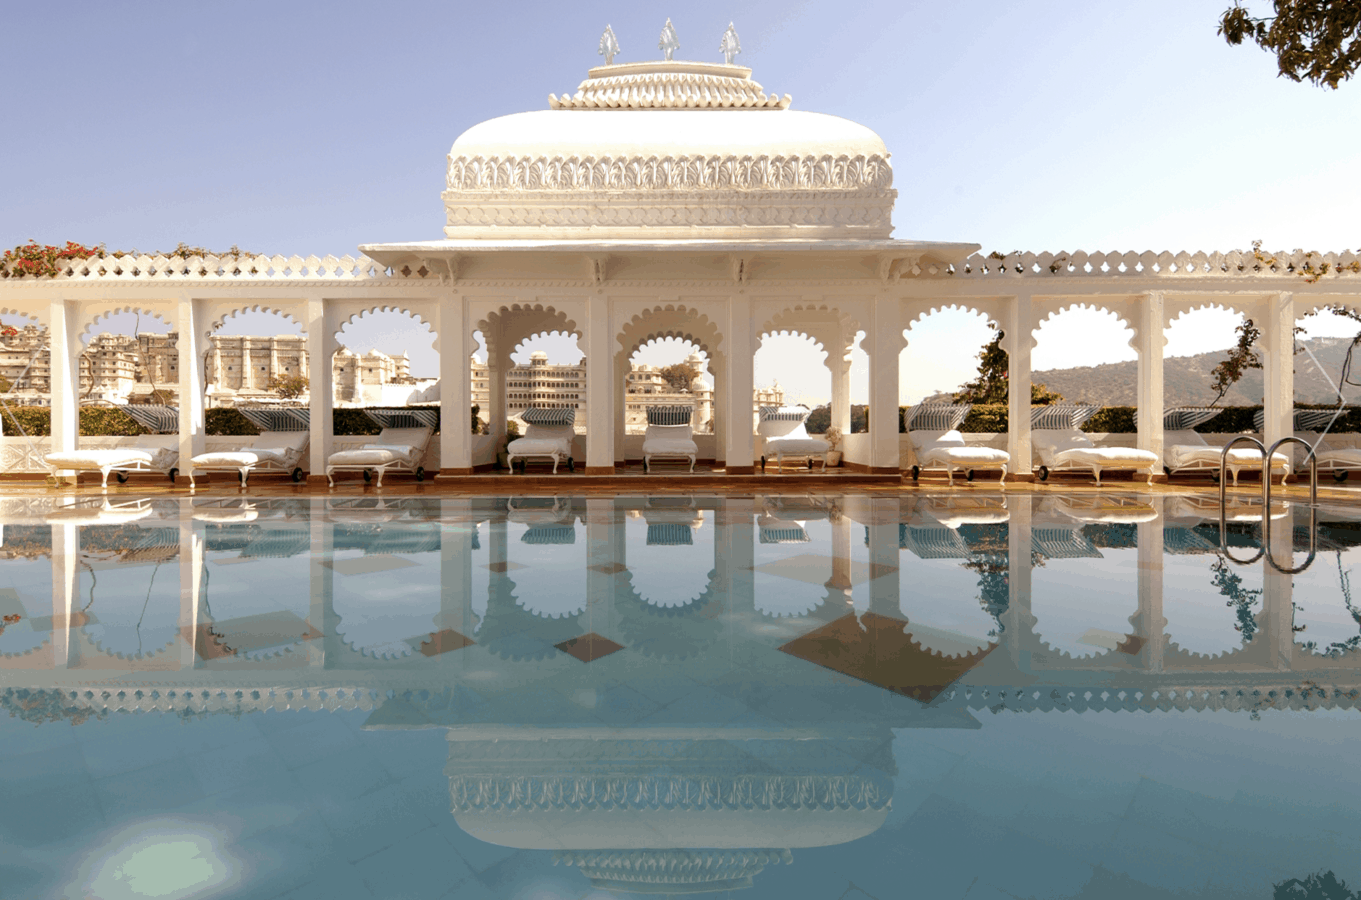 Luxurious pool at the Taj Lake palace.